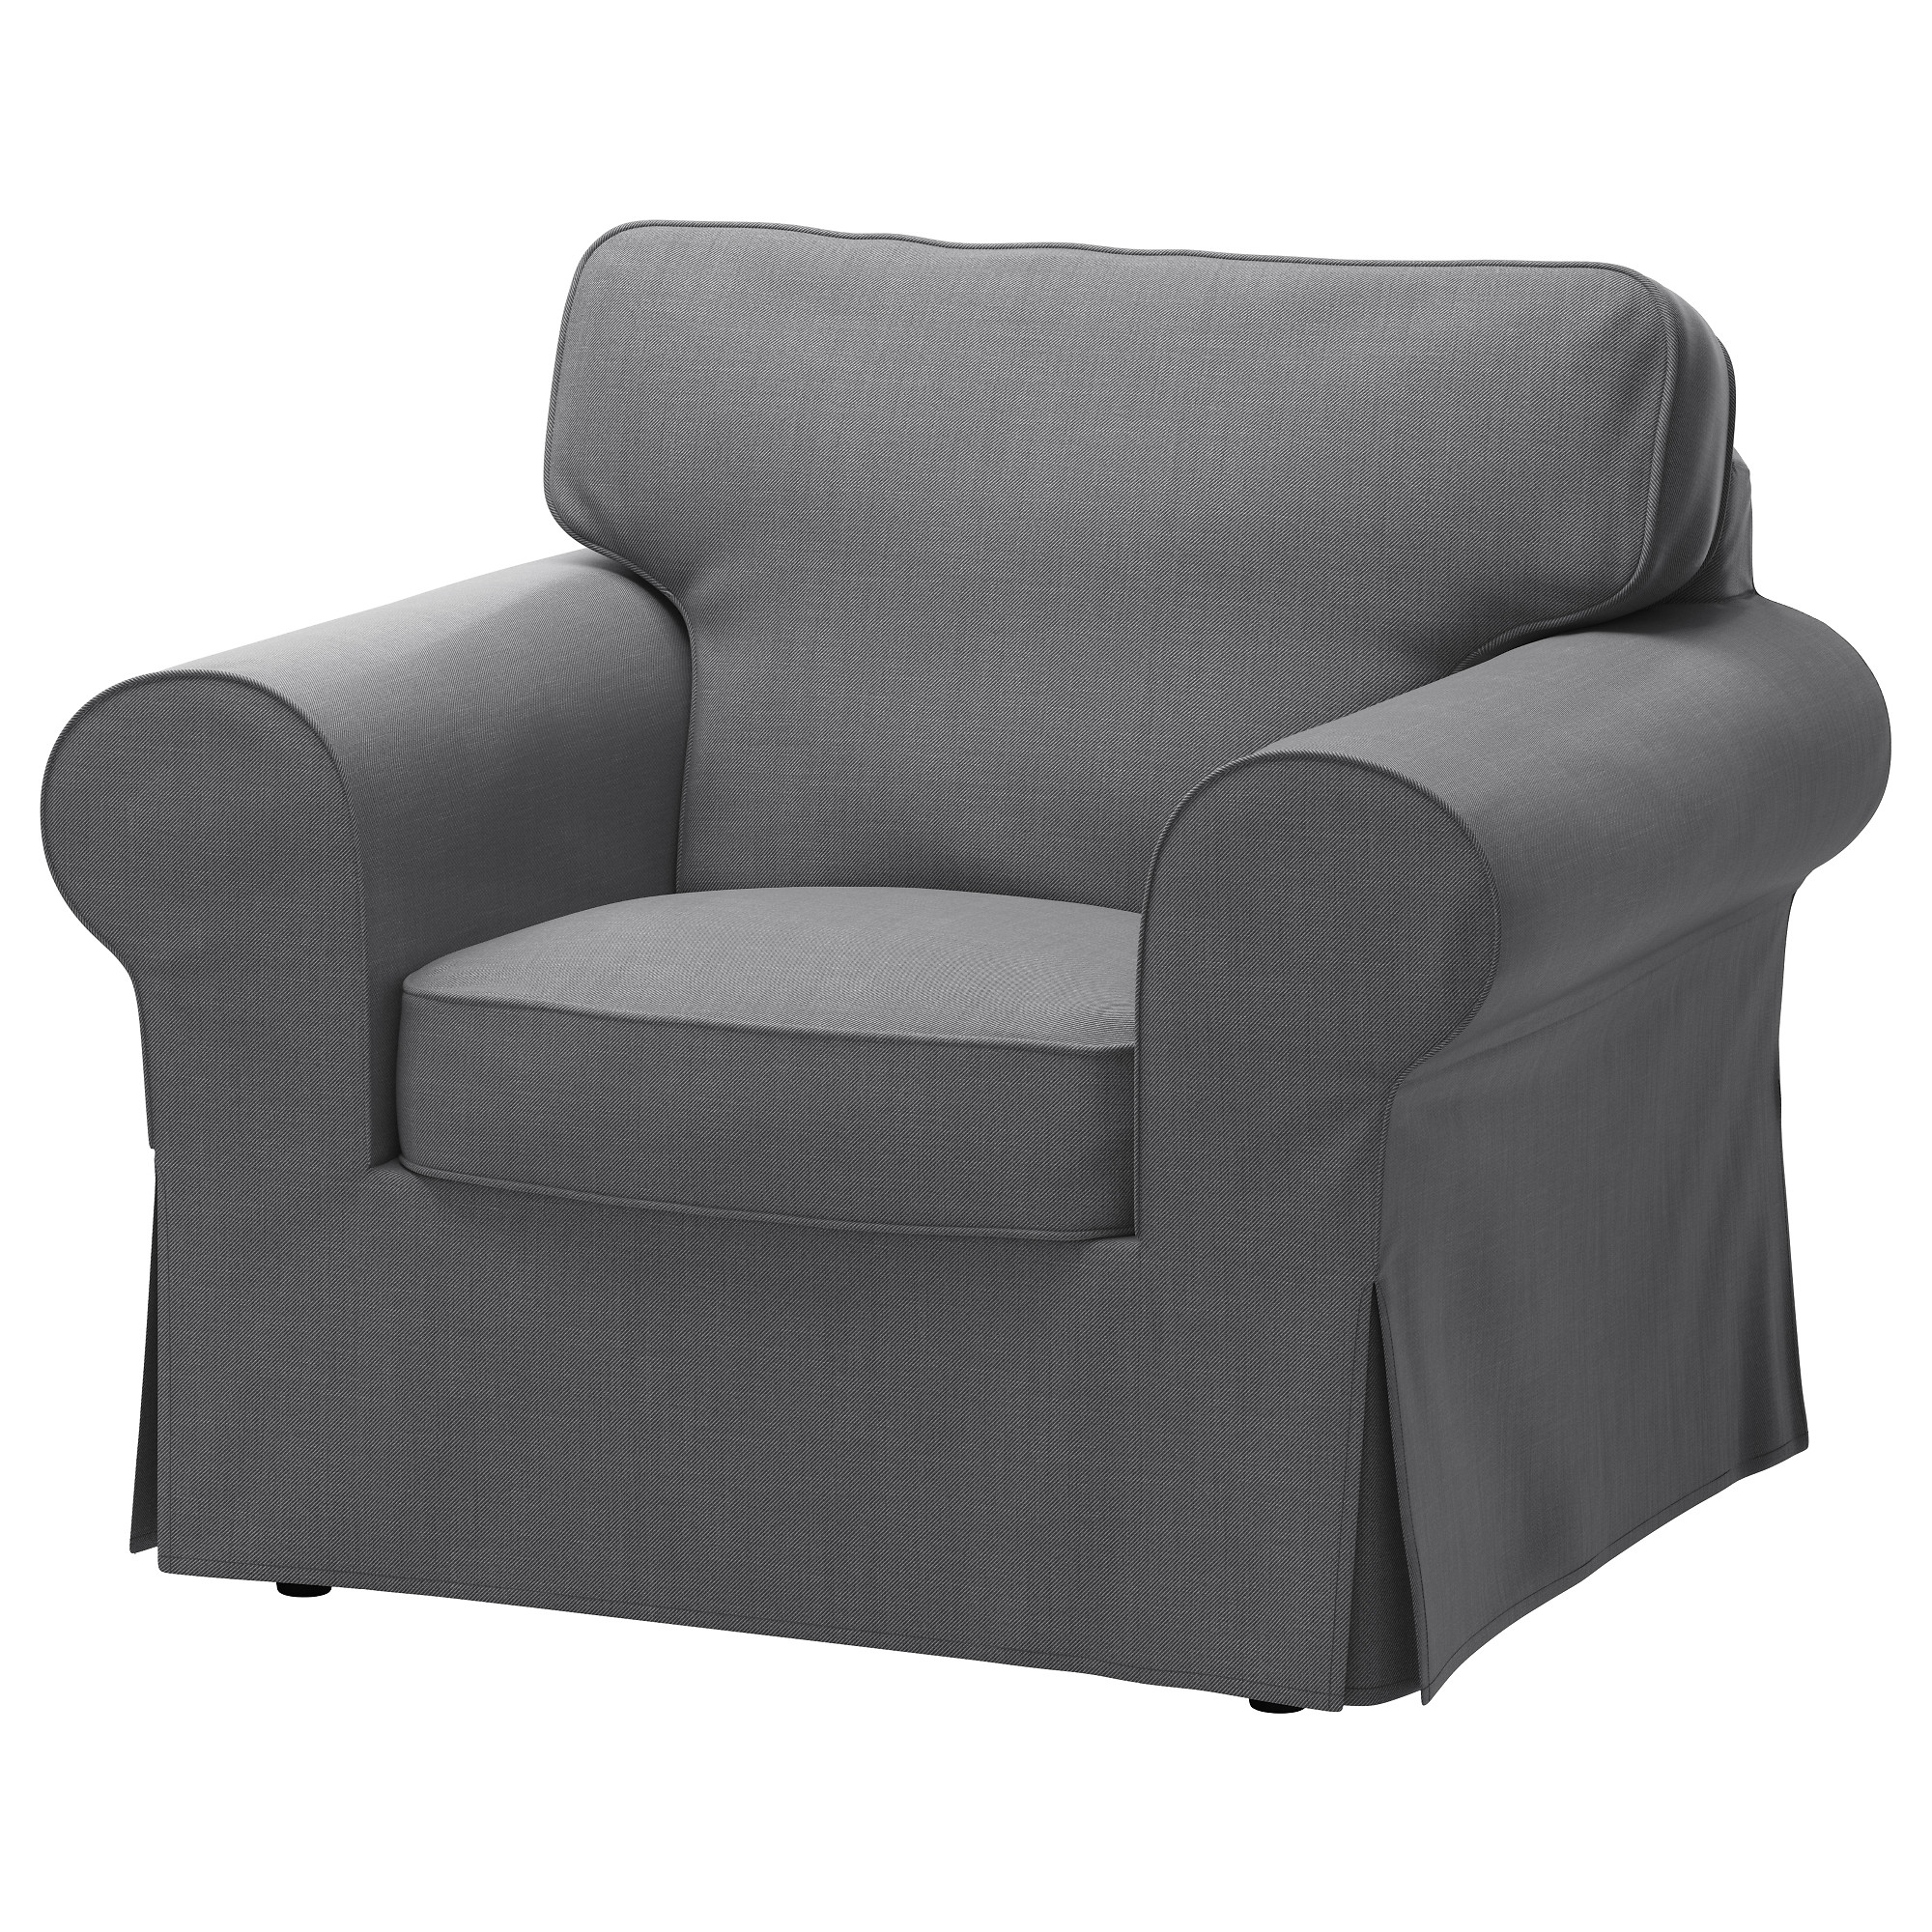 pleasurable chair ideas wingback design accent gray absolutely in grey